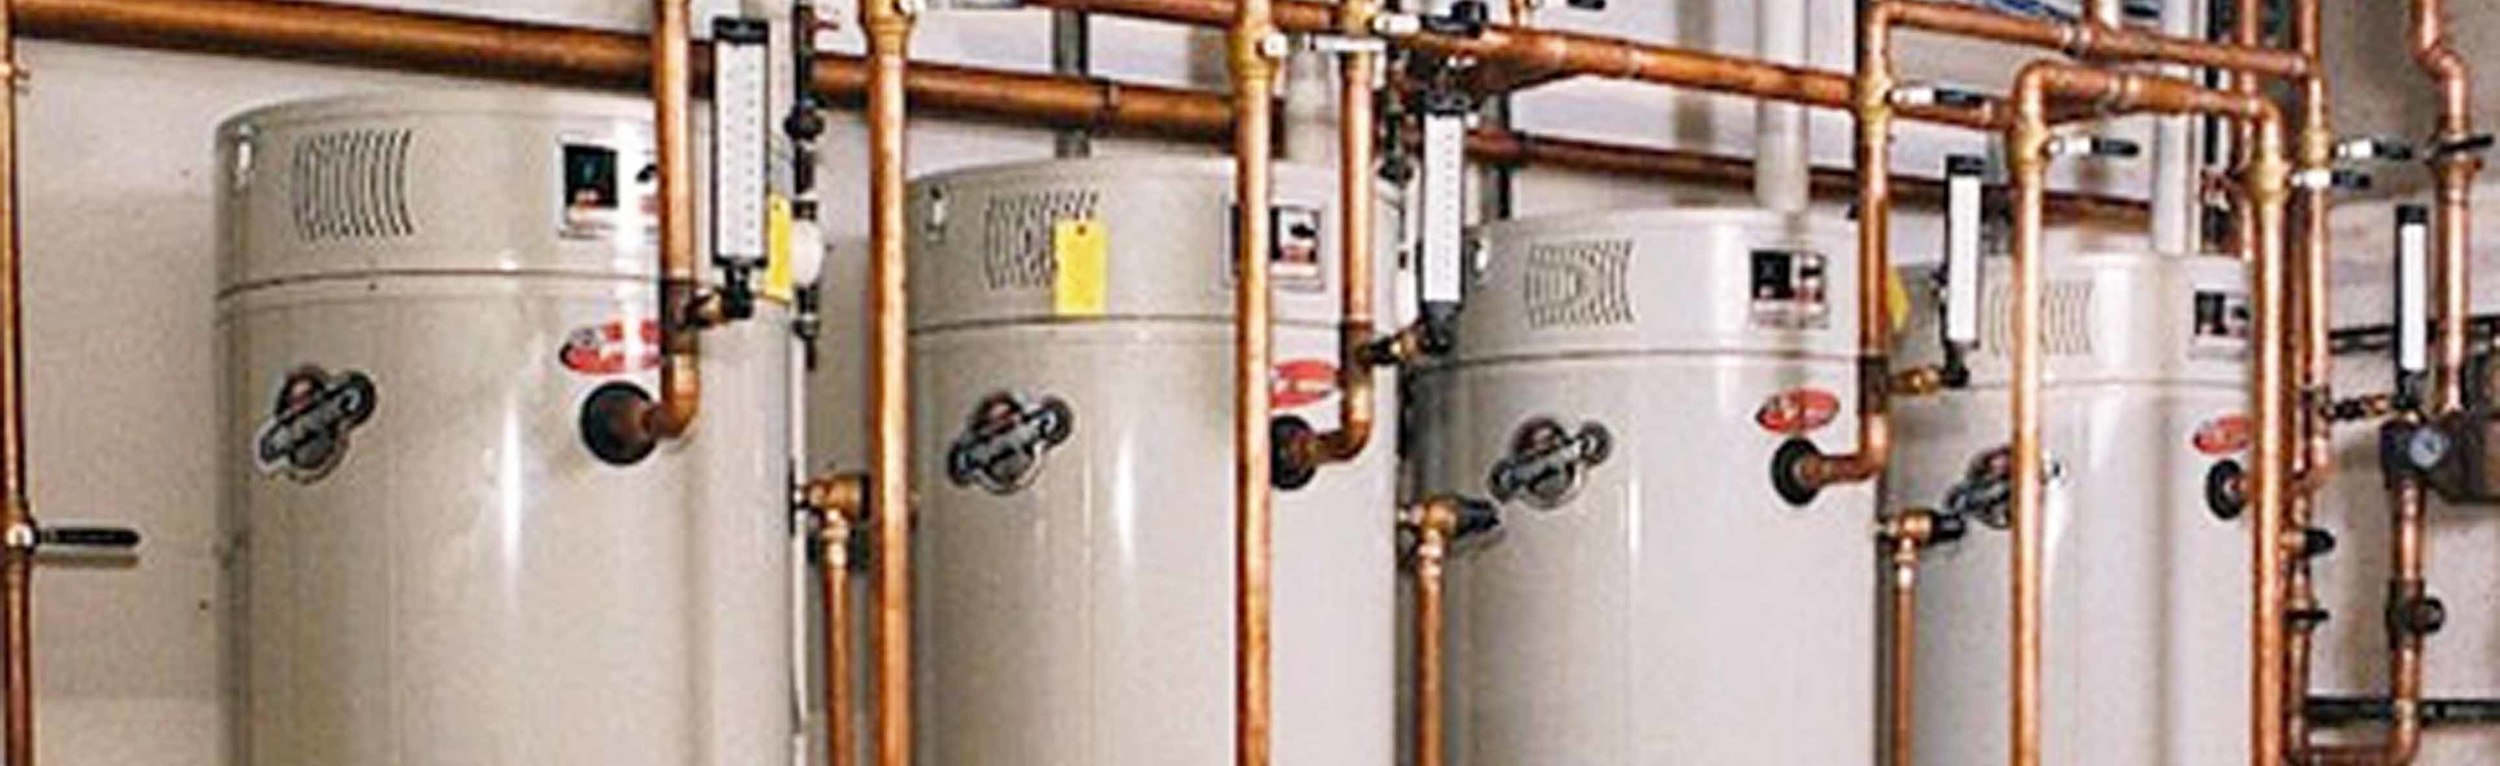 hot water gas repair queensland installation provincial plumbing and gas.jpg